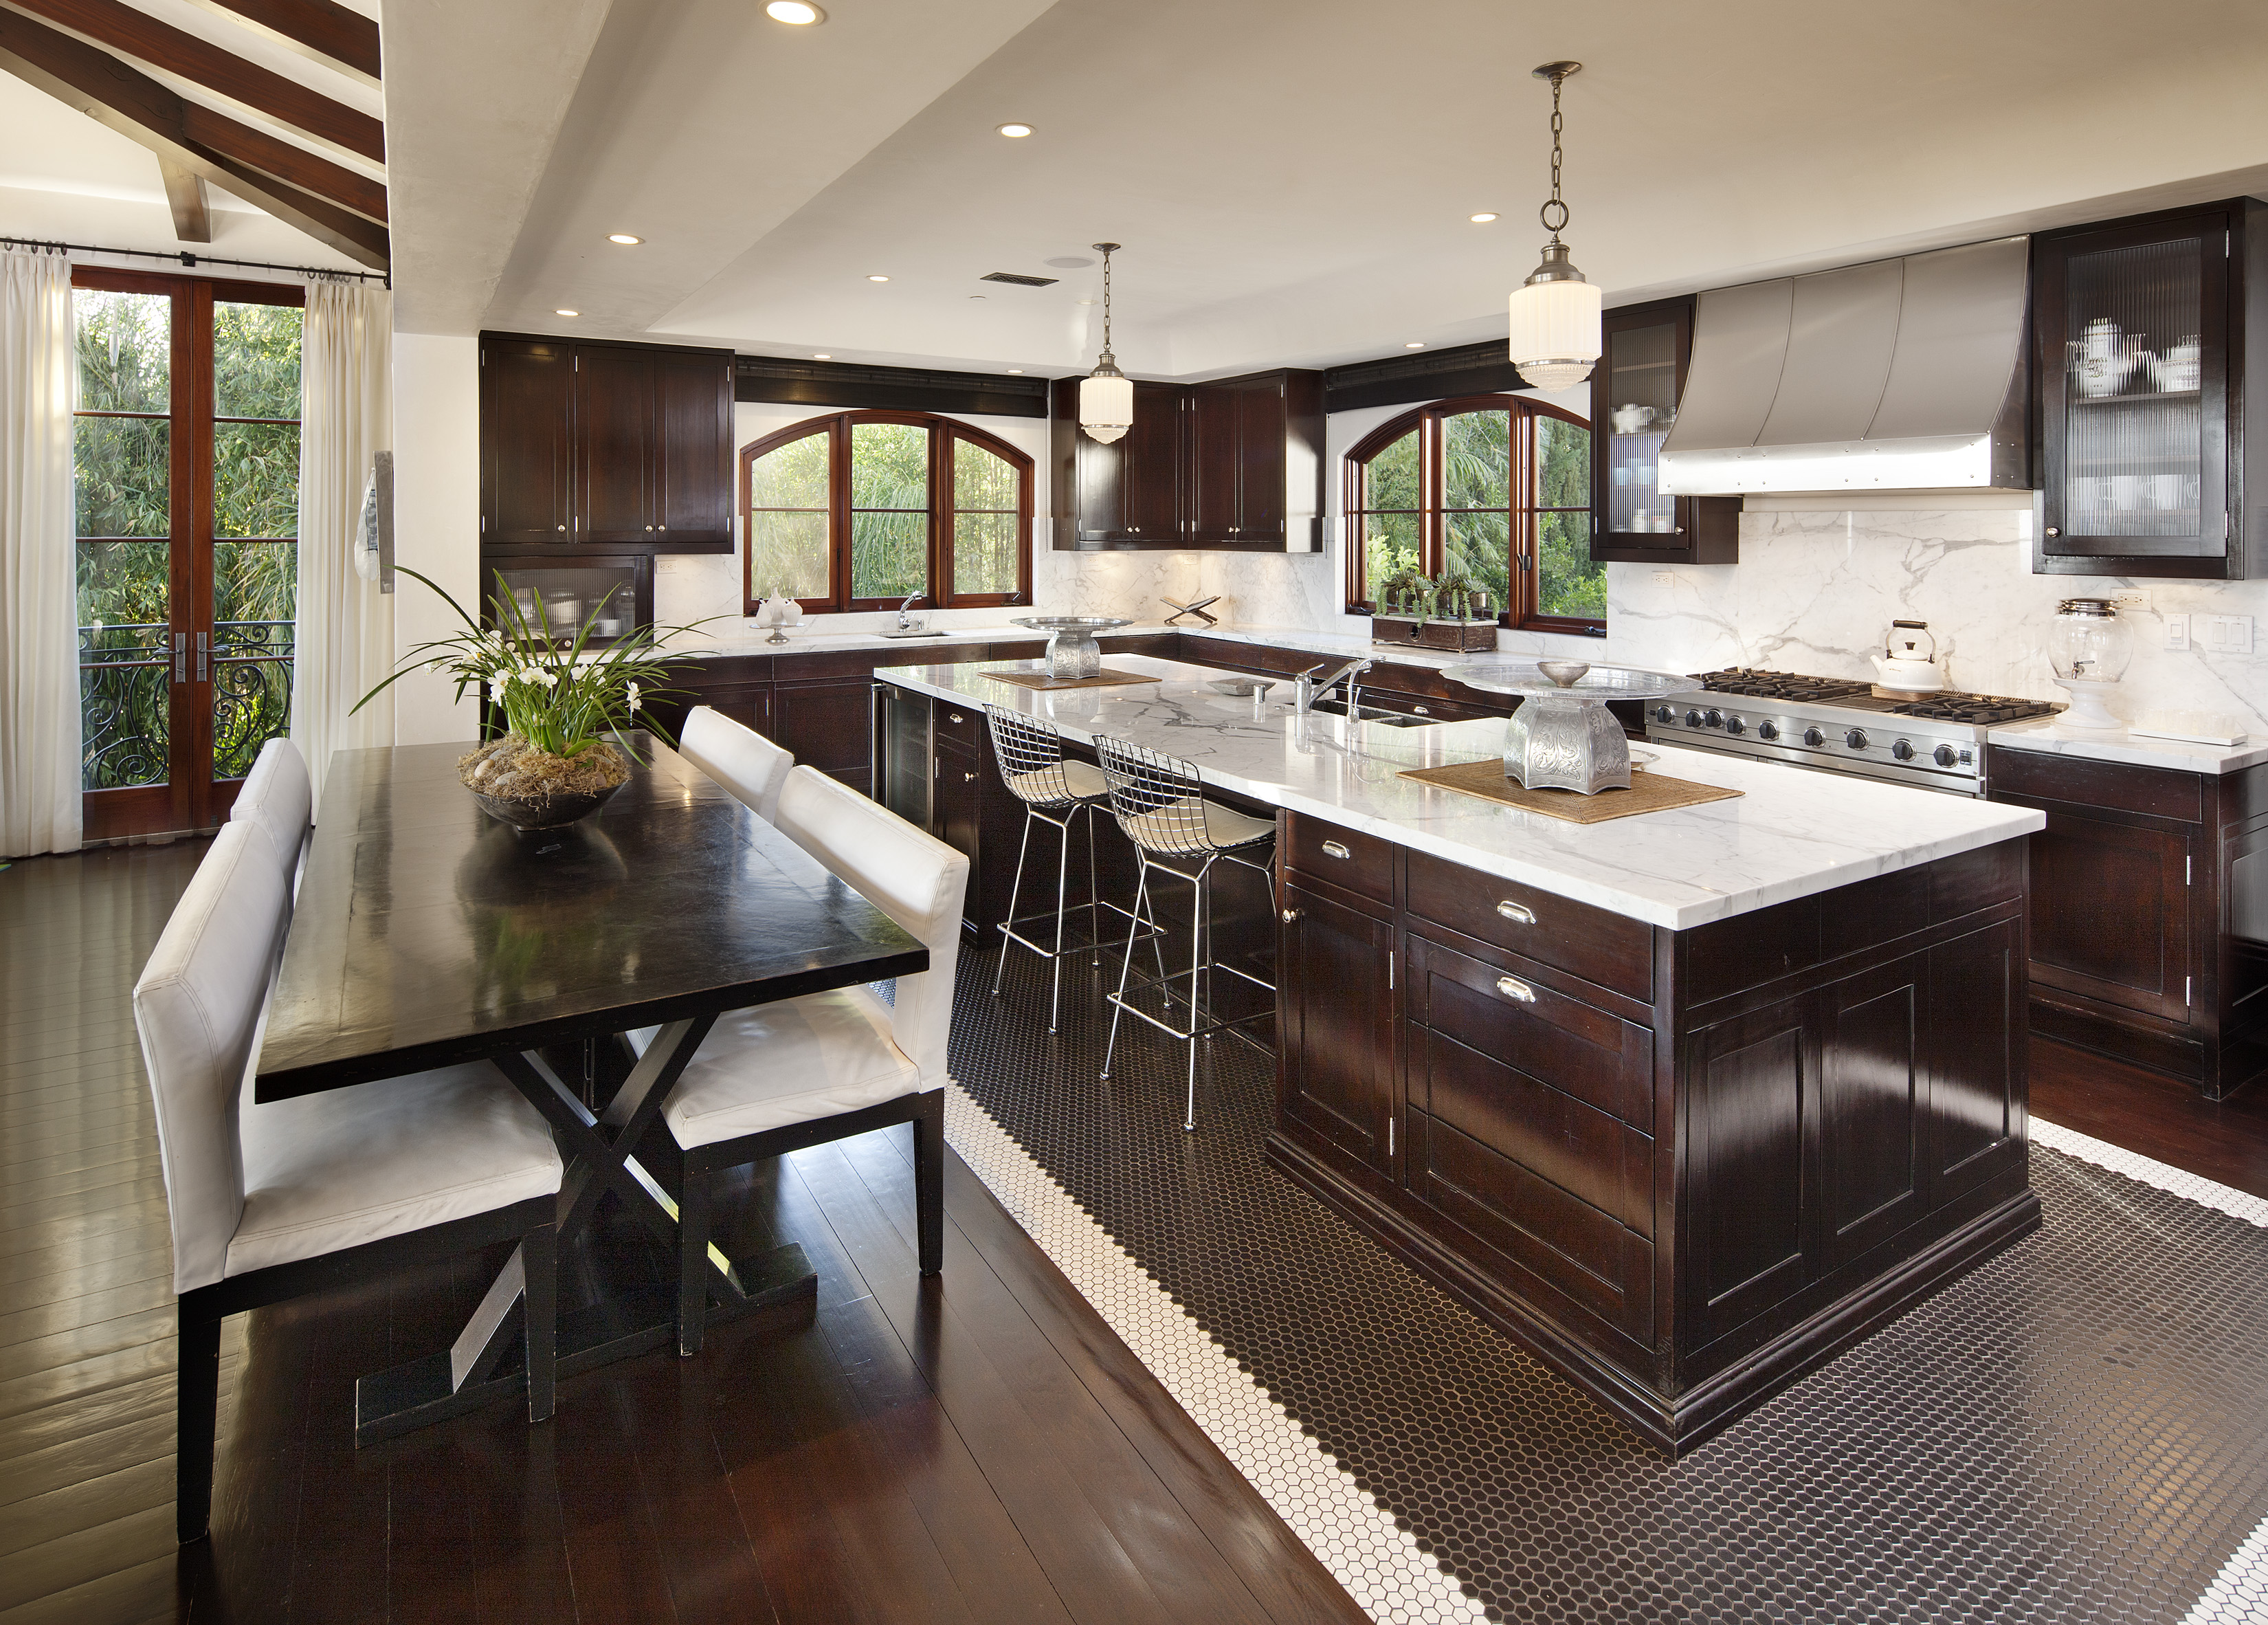 Beautiful Kitchens Eat Your Heart Out Part Two Montecito Real Estate